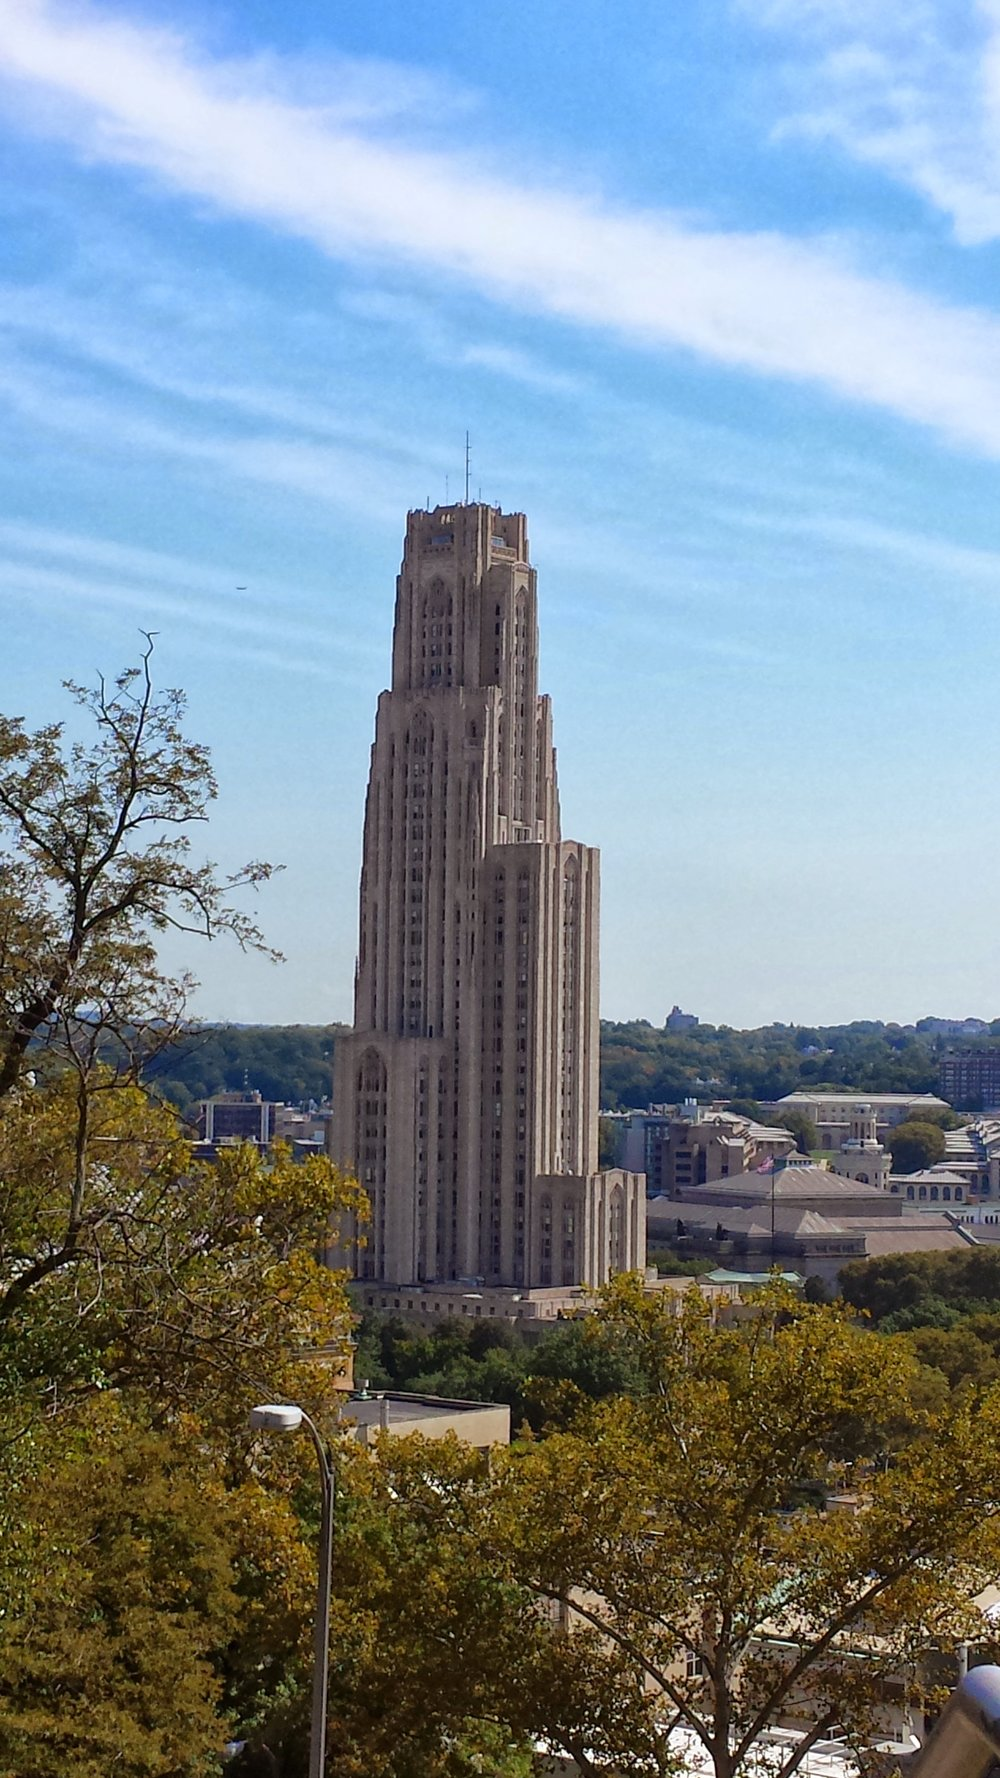 Pittsburgh, PA (The Cathedral of Learning)